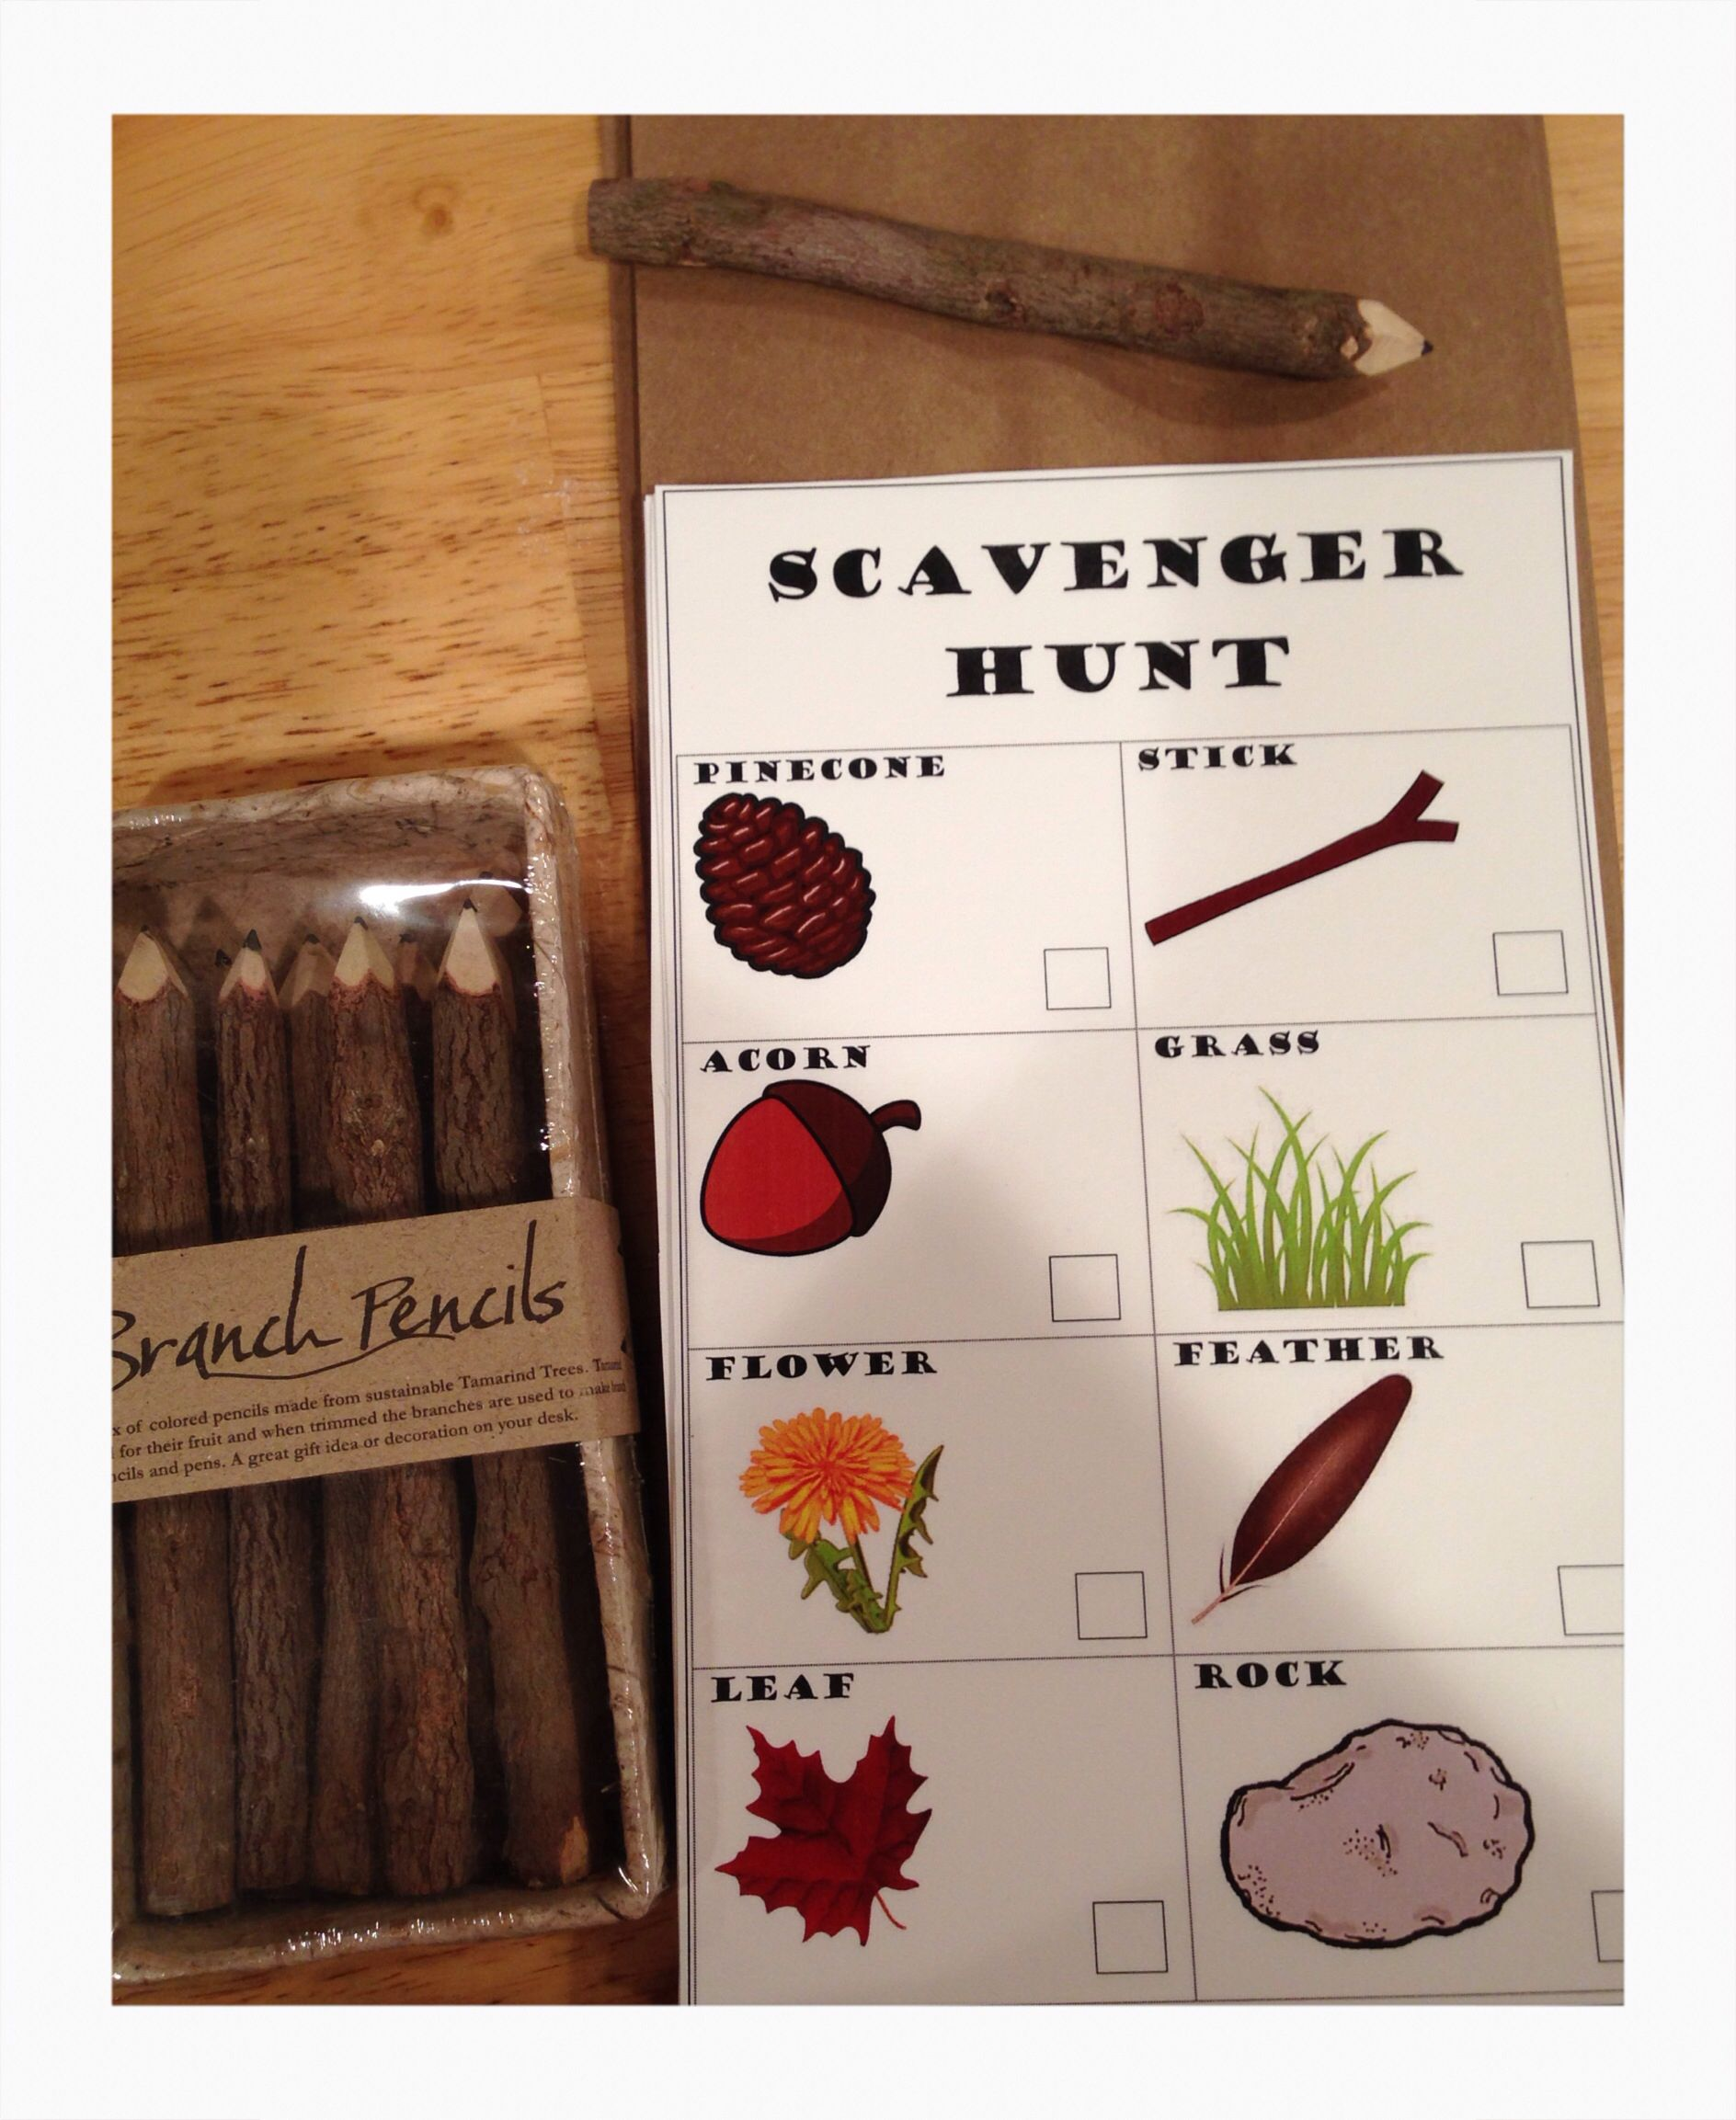 Scavenger Hunt Party Game For The Kids With Branch Pencils